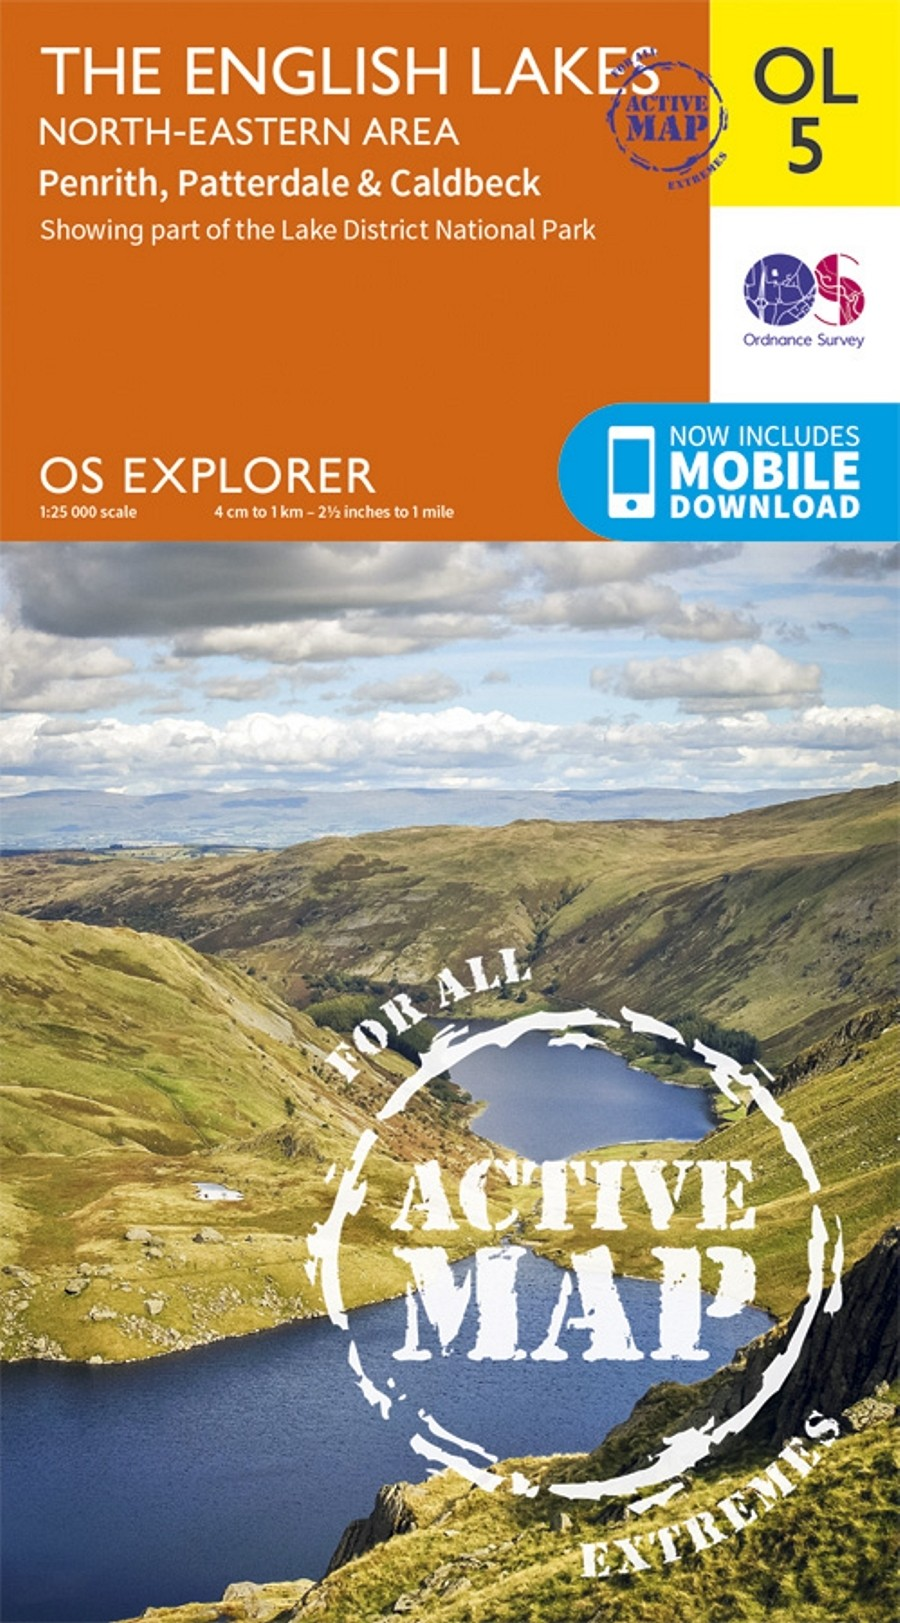 OL5 English Lakes North-Eastern area: ACTIVE